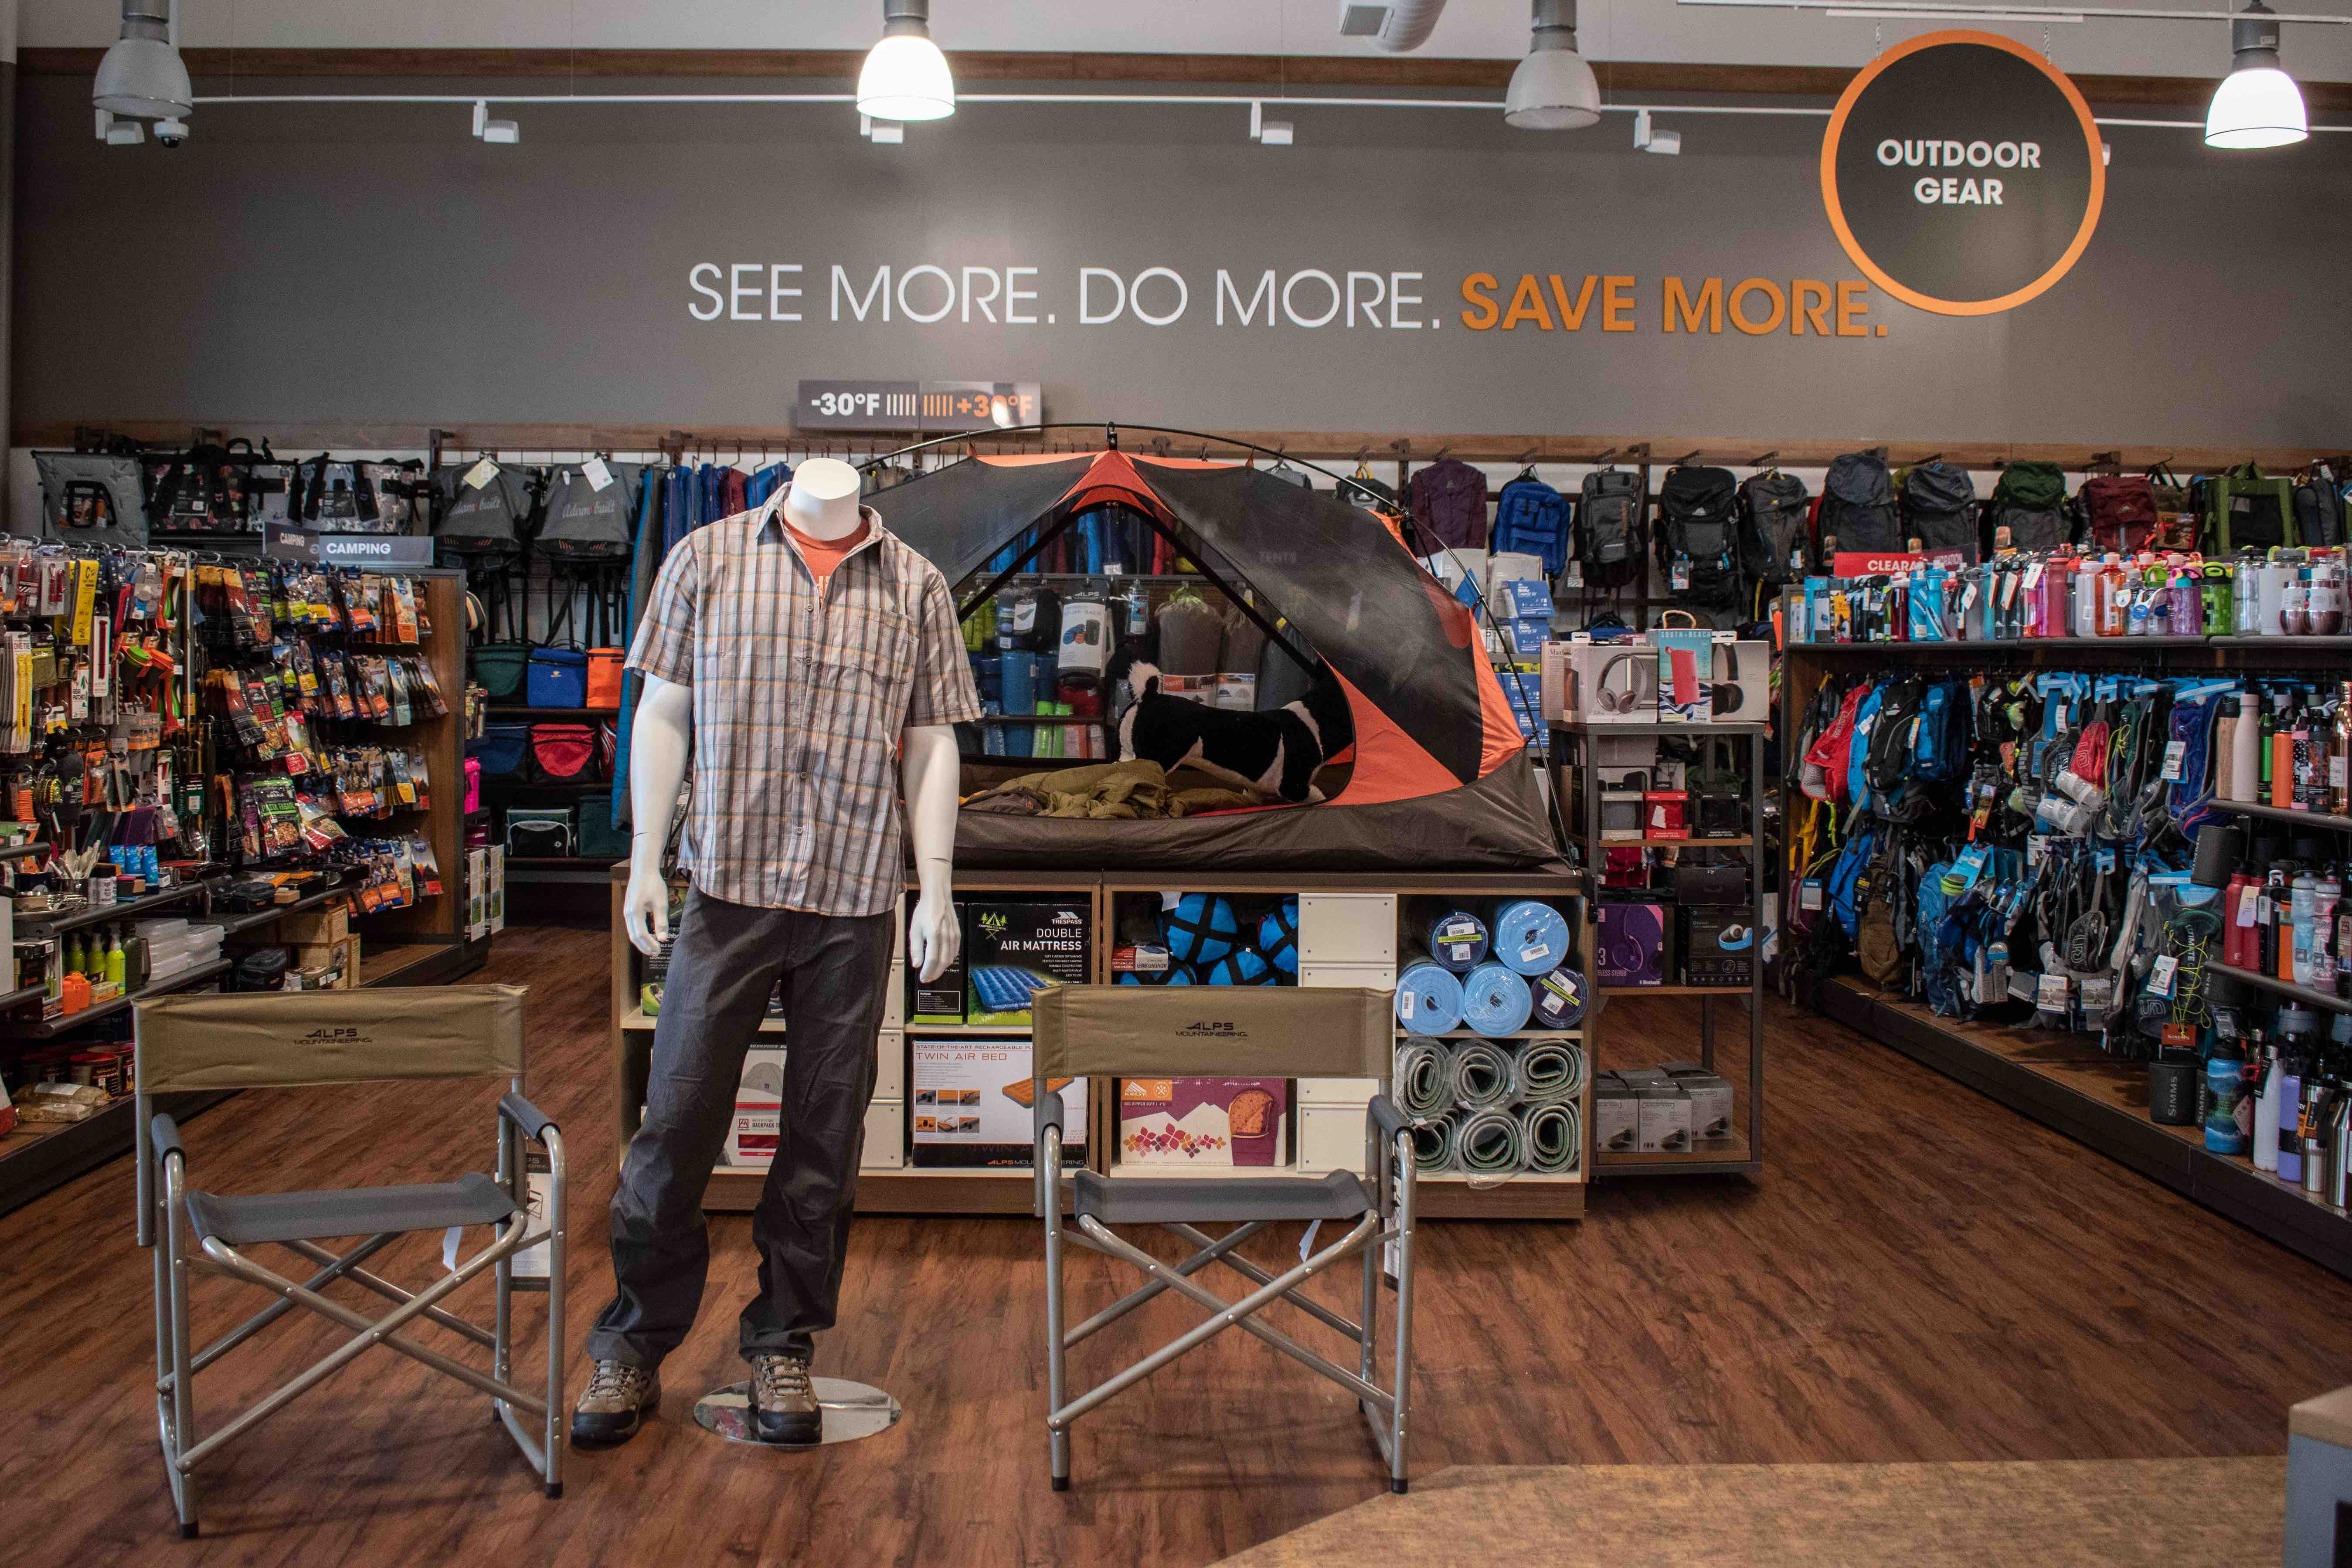 3793371085ea3 Discount retailer Sierra, which specializes in outdoor gear and apparel,  opened two new stores in the Philly area this weekend. / Photograph  courtesy Sierra